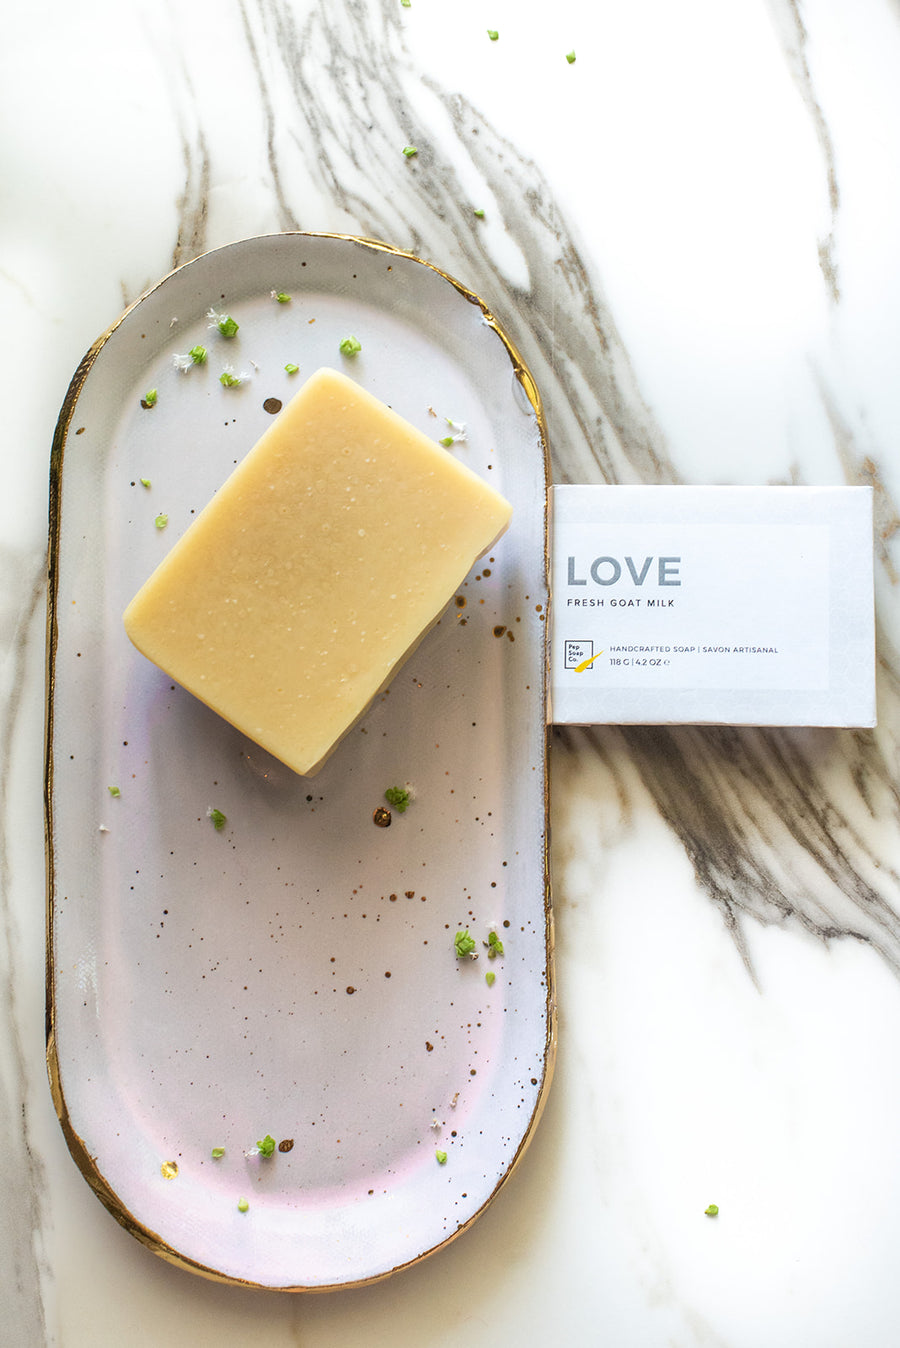 Goat Milk Soap LOVE by Pep Soap Co. with locally sourced Goat Milk from BC's Fraser Valley